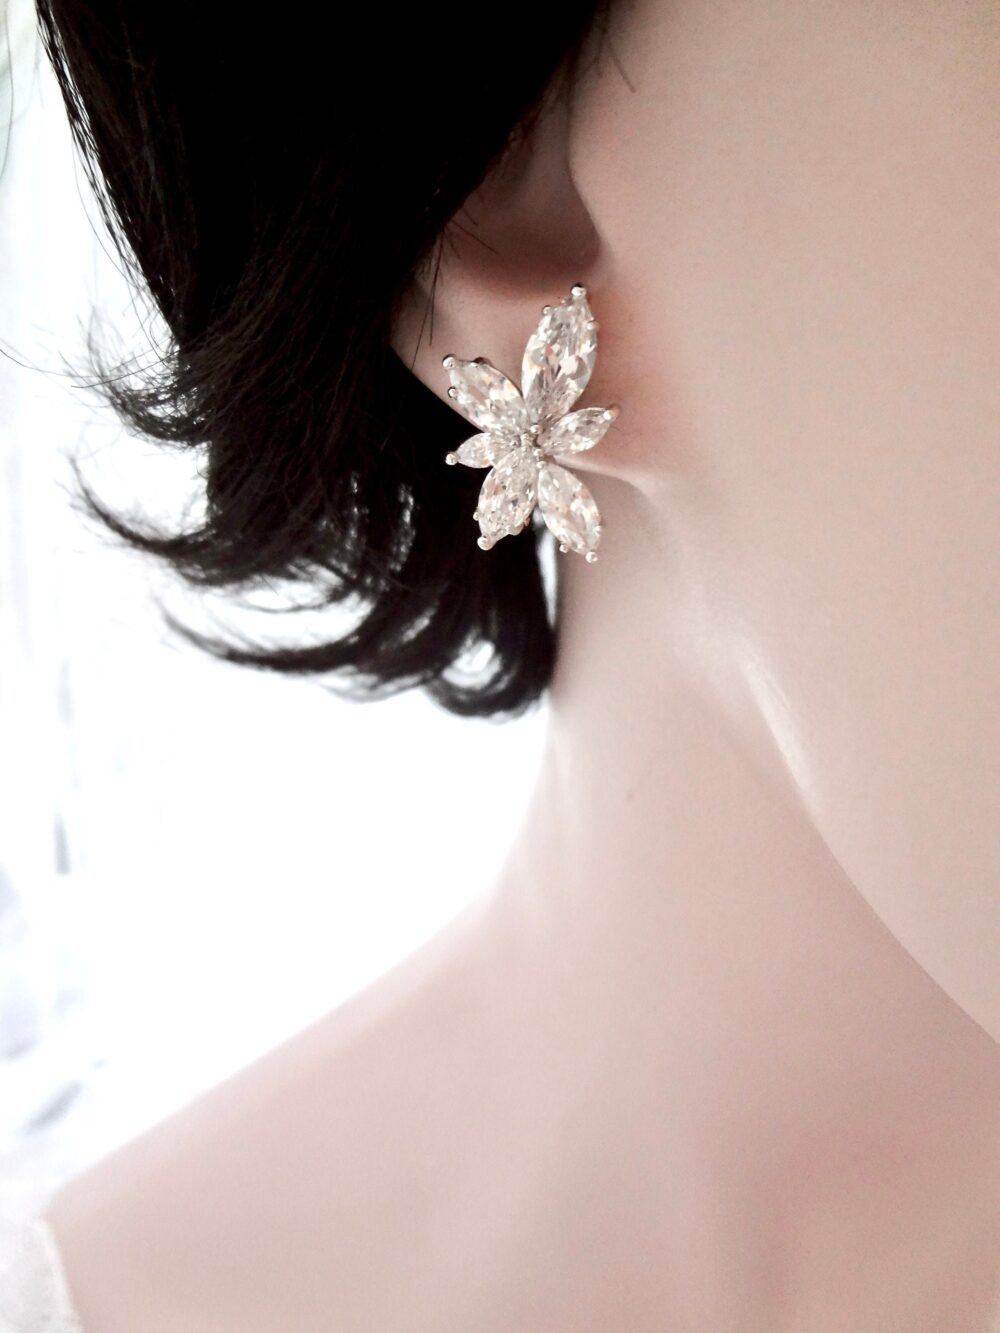 Bridal Earrings, Cz Dainty Marquise Leaf Wedding Stud Earrings For Bride Bridesmaids Mother Of The Gift For Her. Lilly